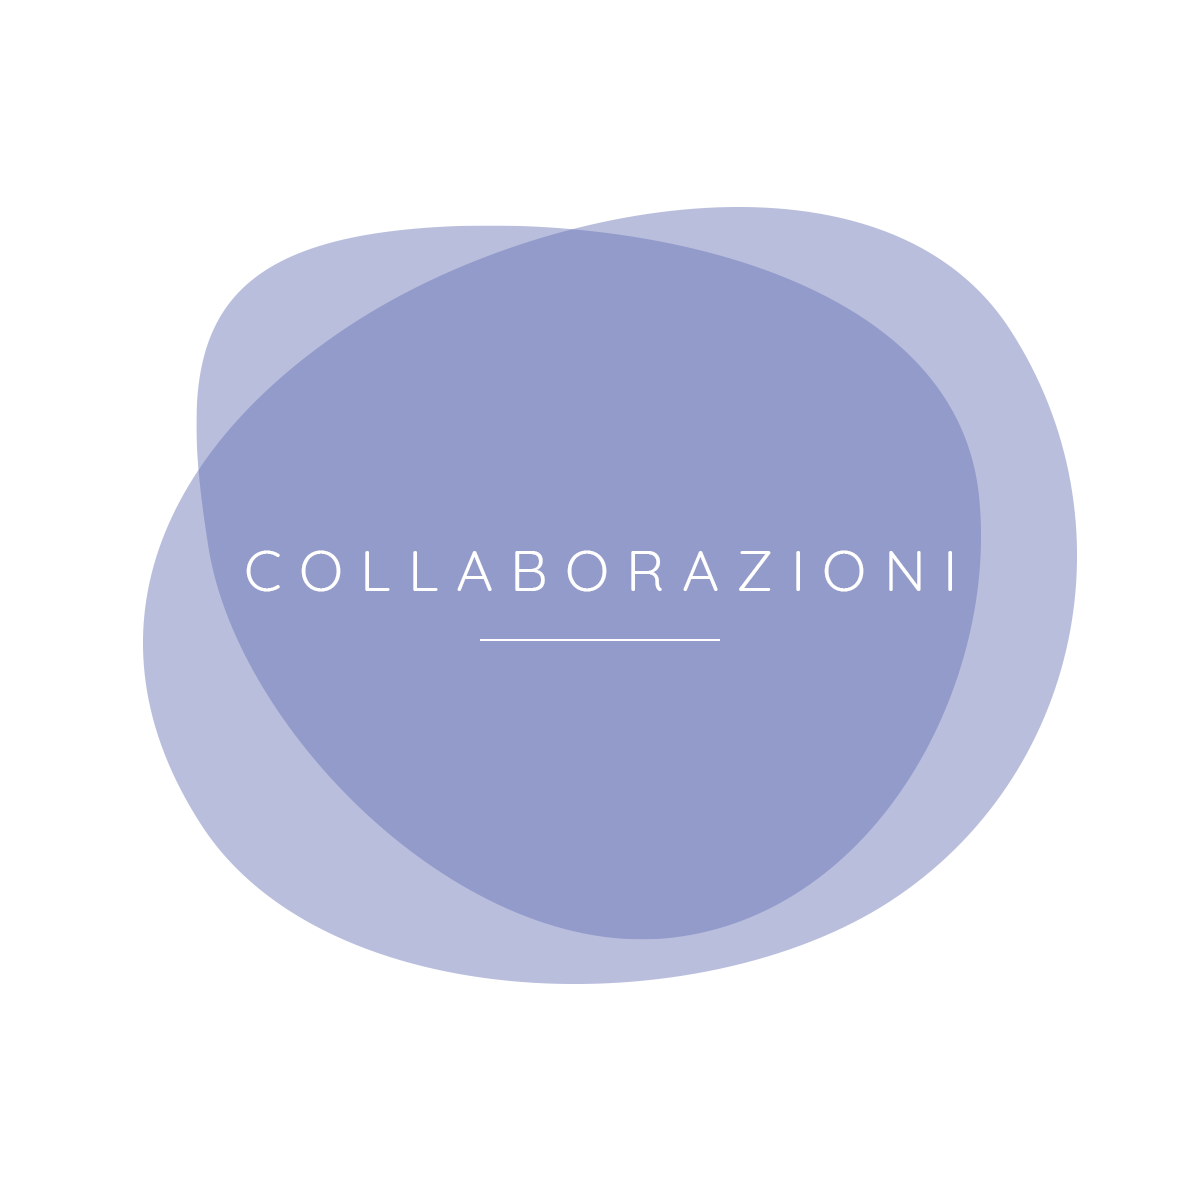 FSC_Text-COLLABORAZIONI